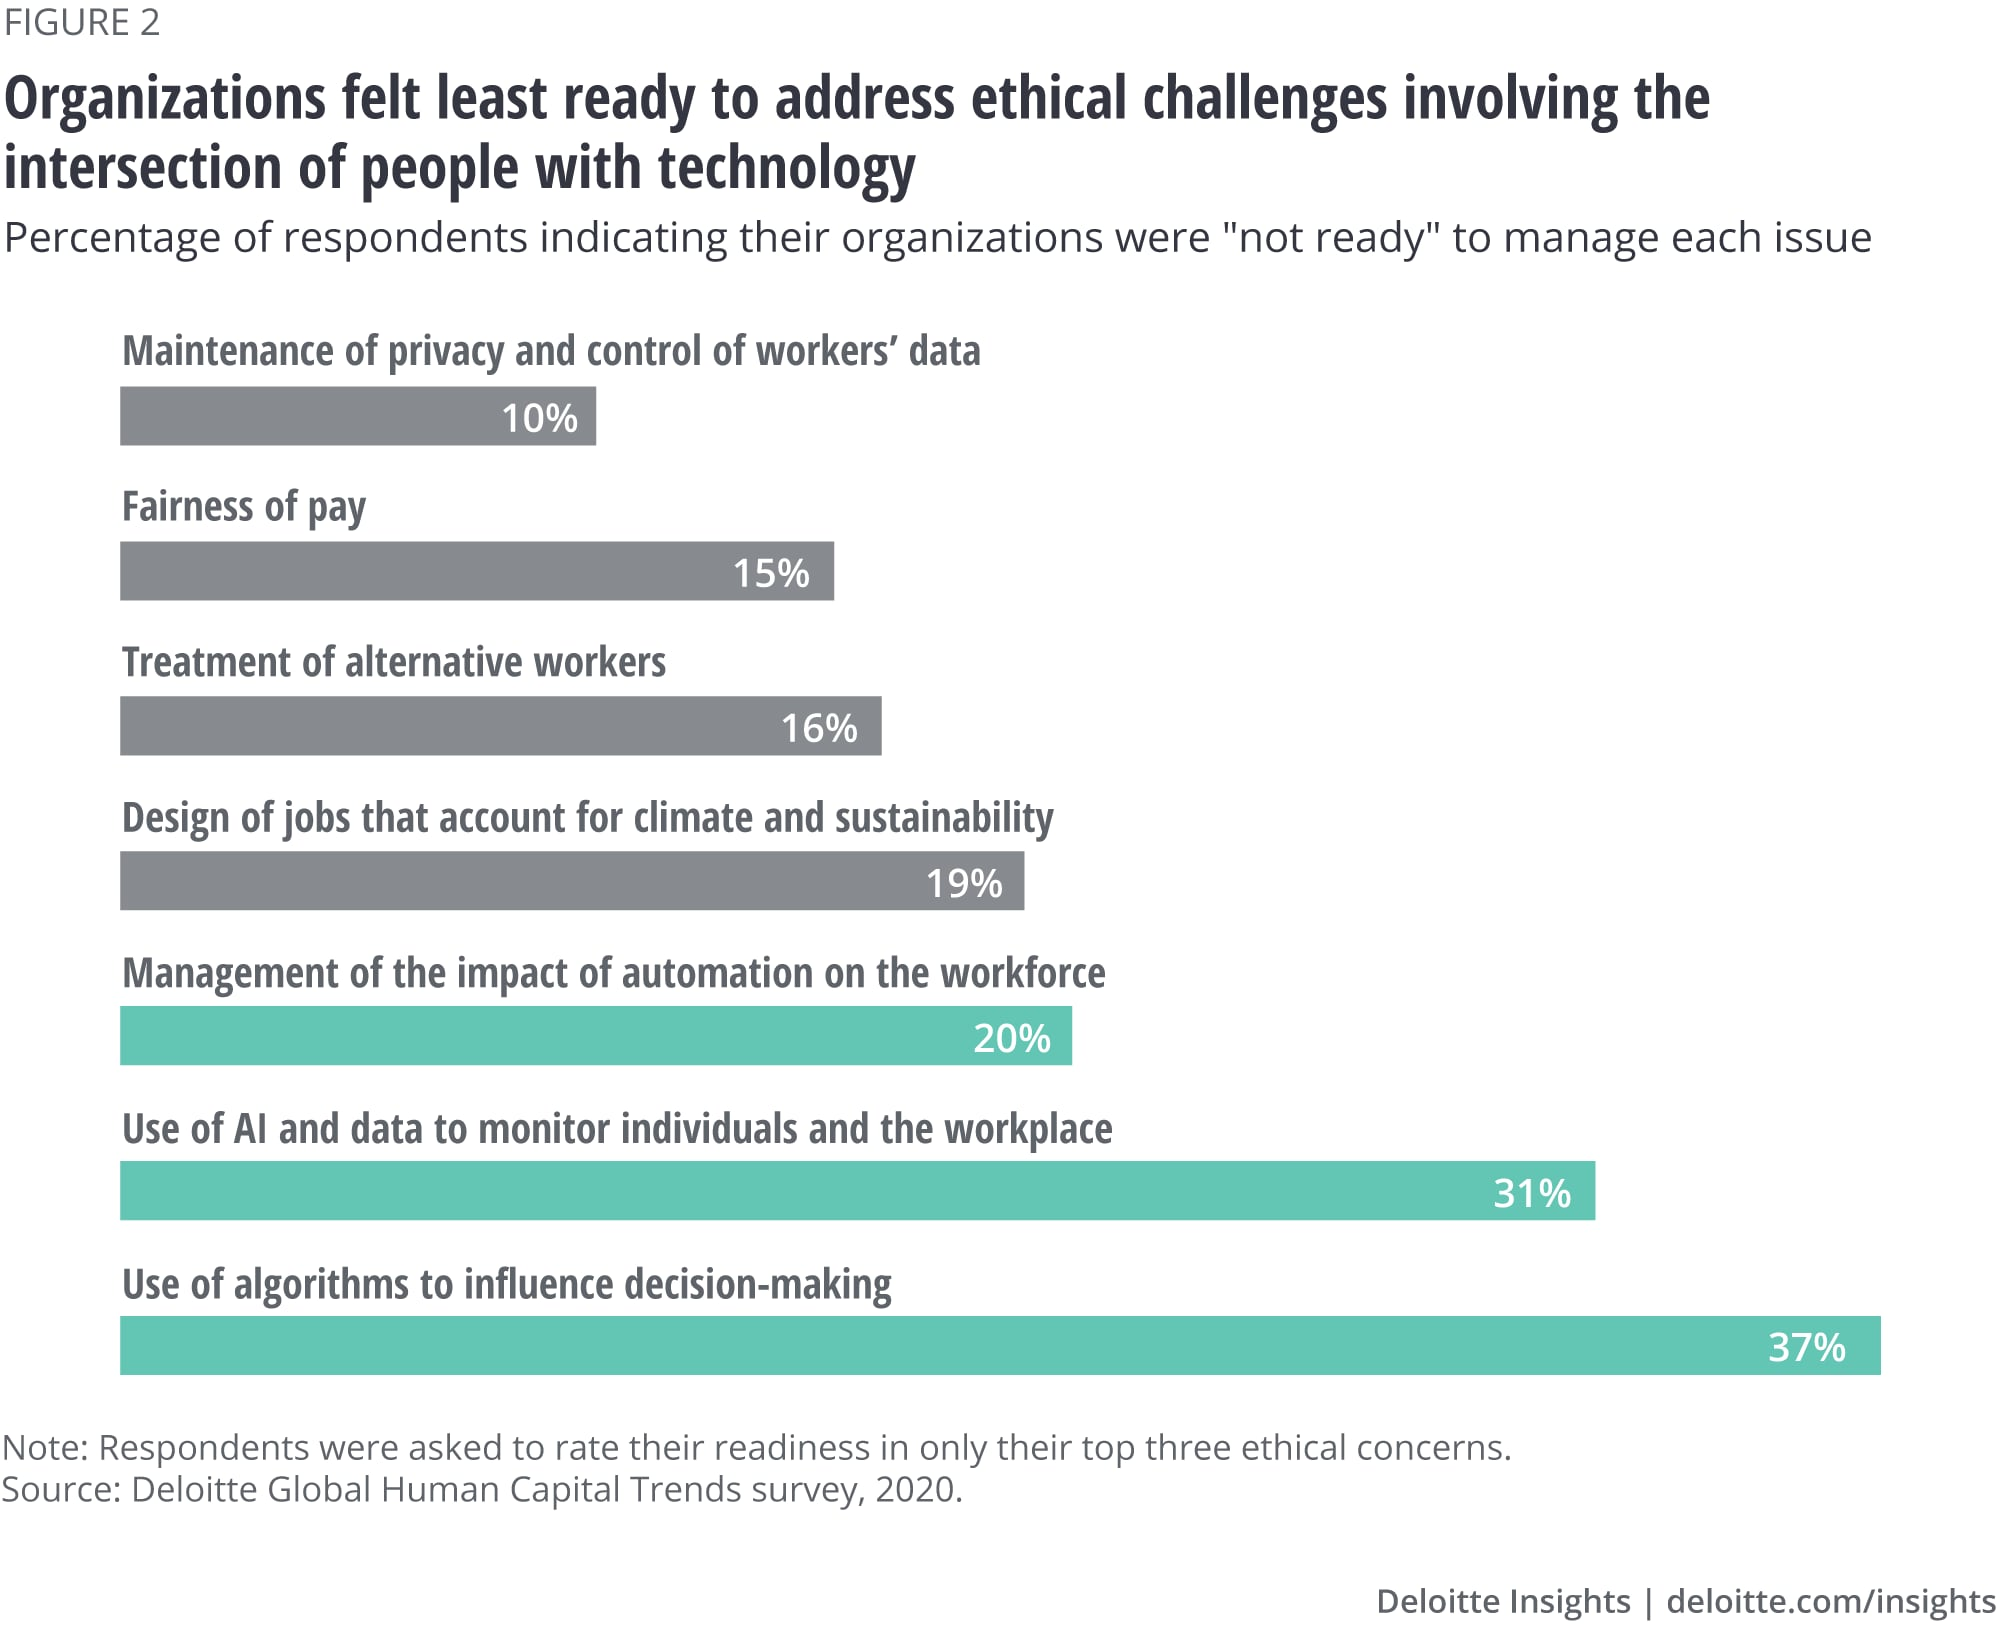 Organizations felt least ready to address ethical challenges involved the intersection of people with technology